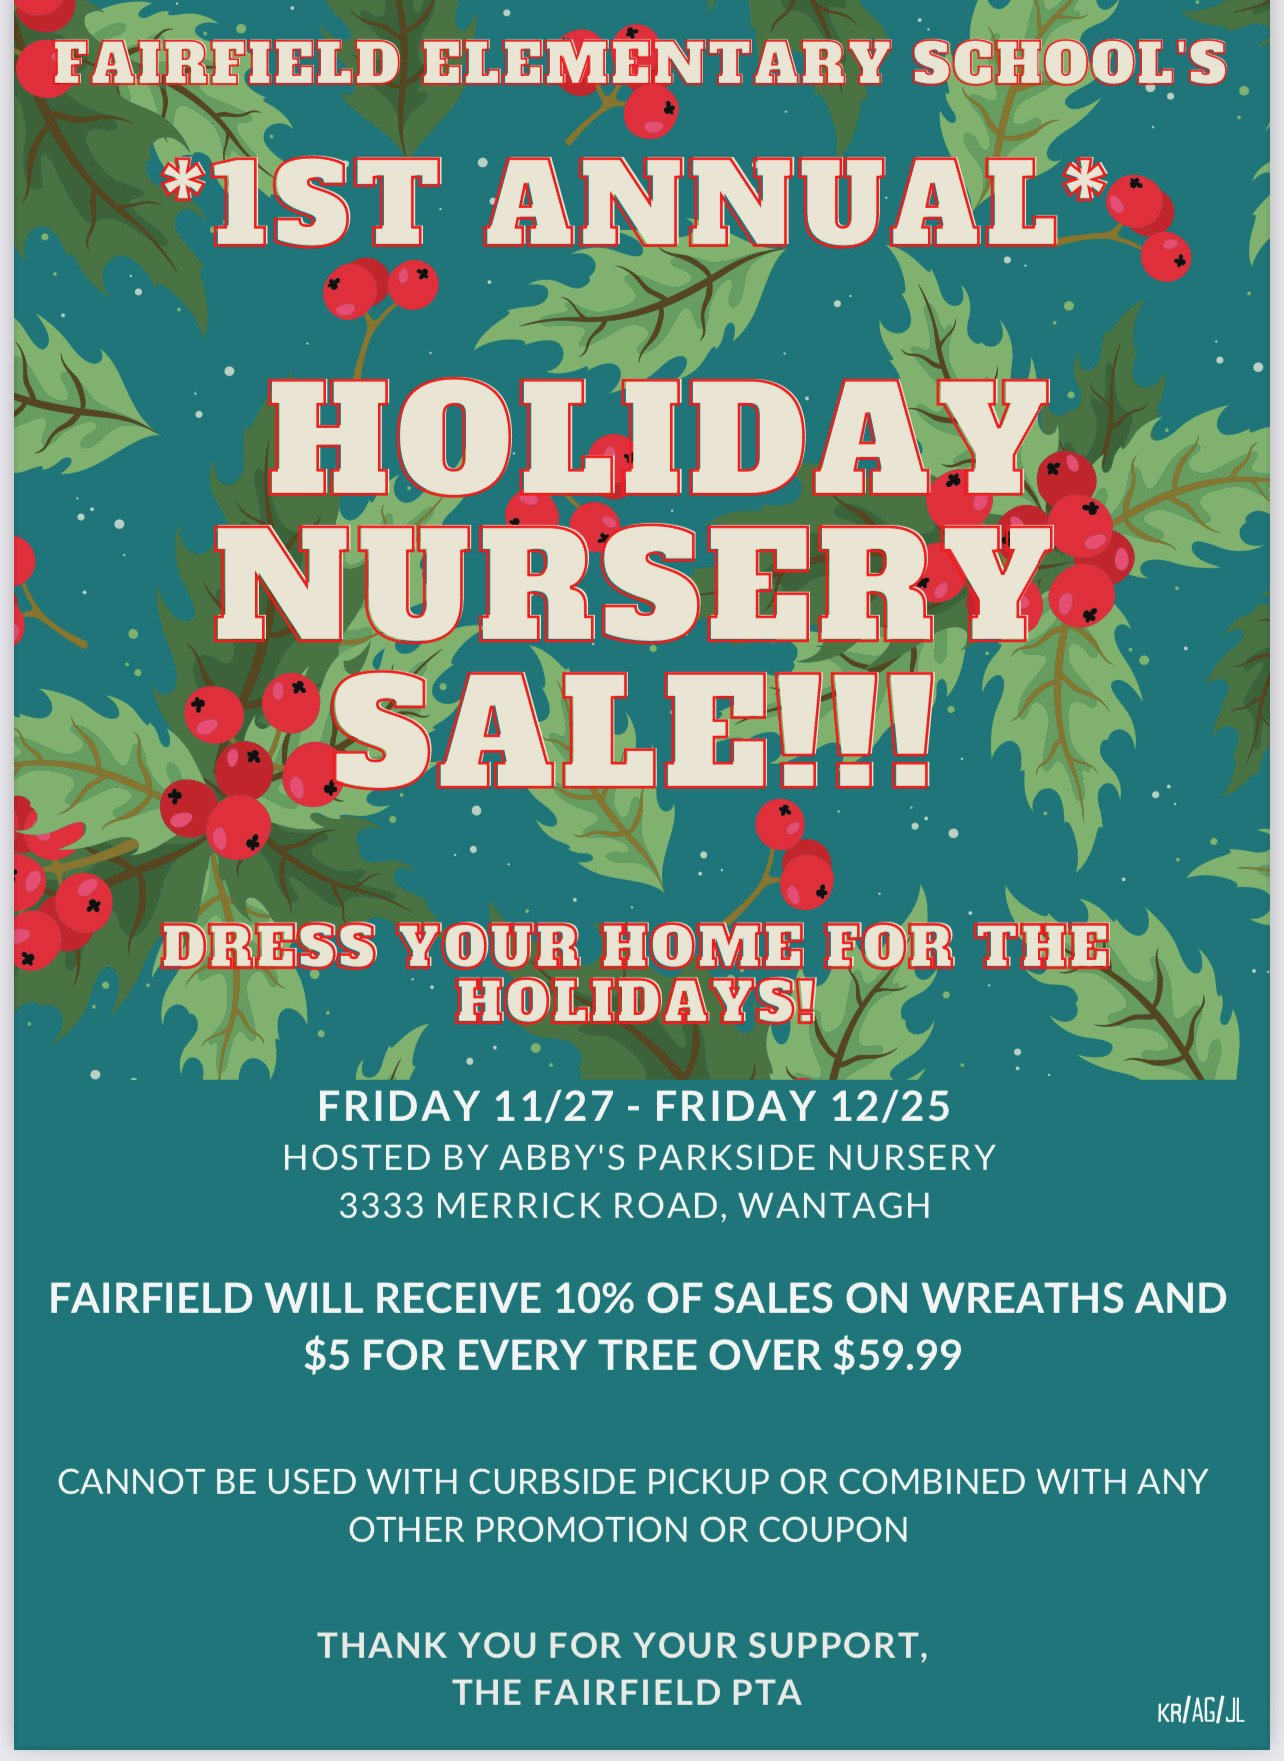 1st Annual Holiday Nursery Sale